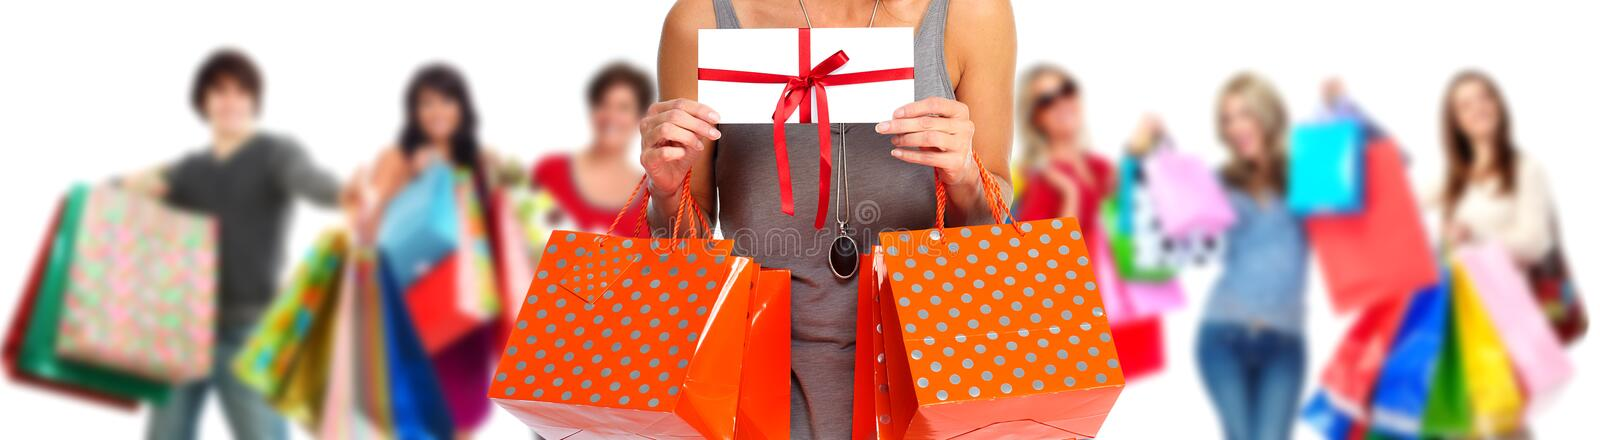 Group of happy shopping customers. royalty free stock image